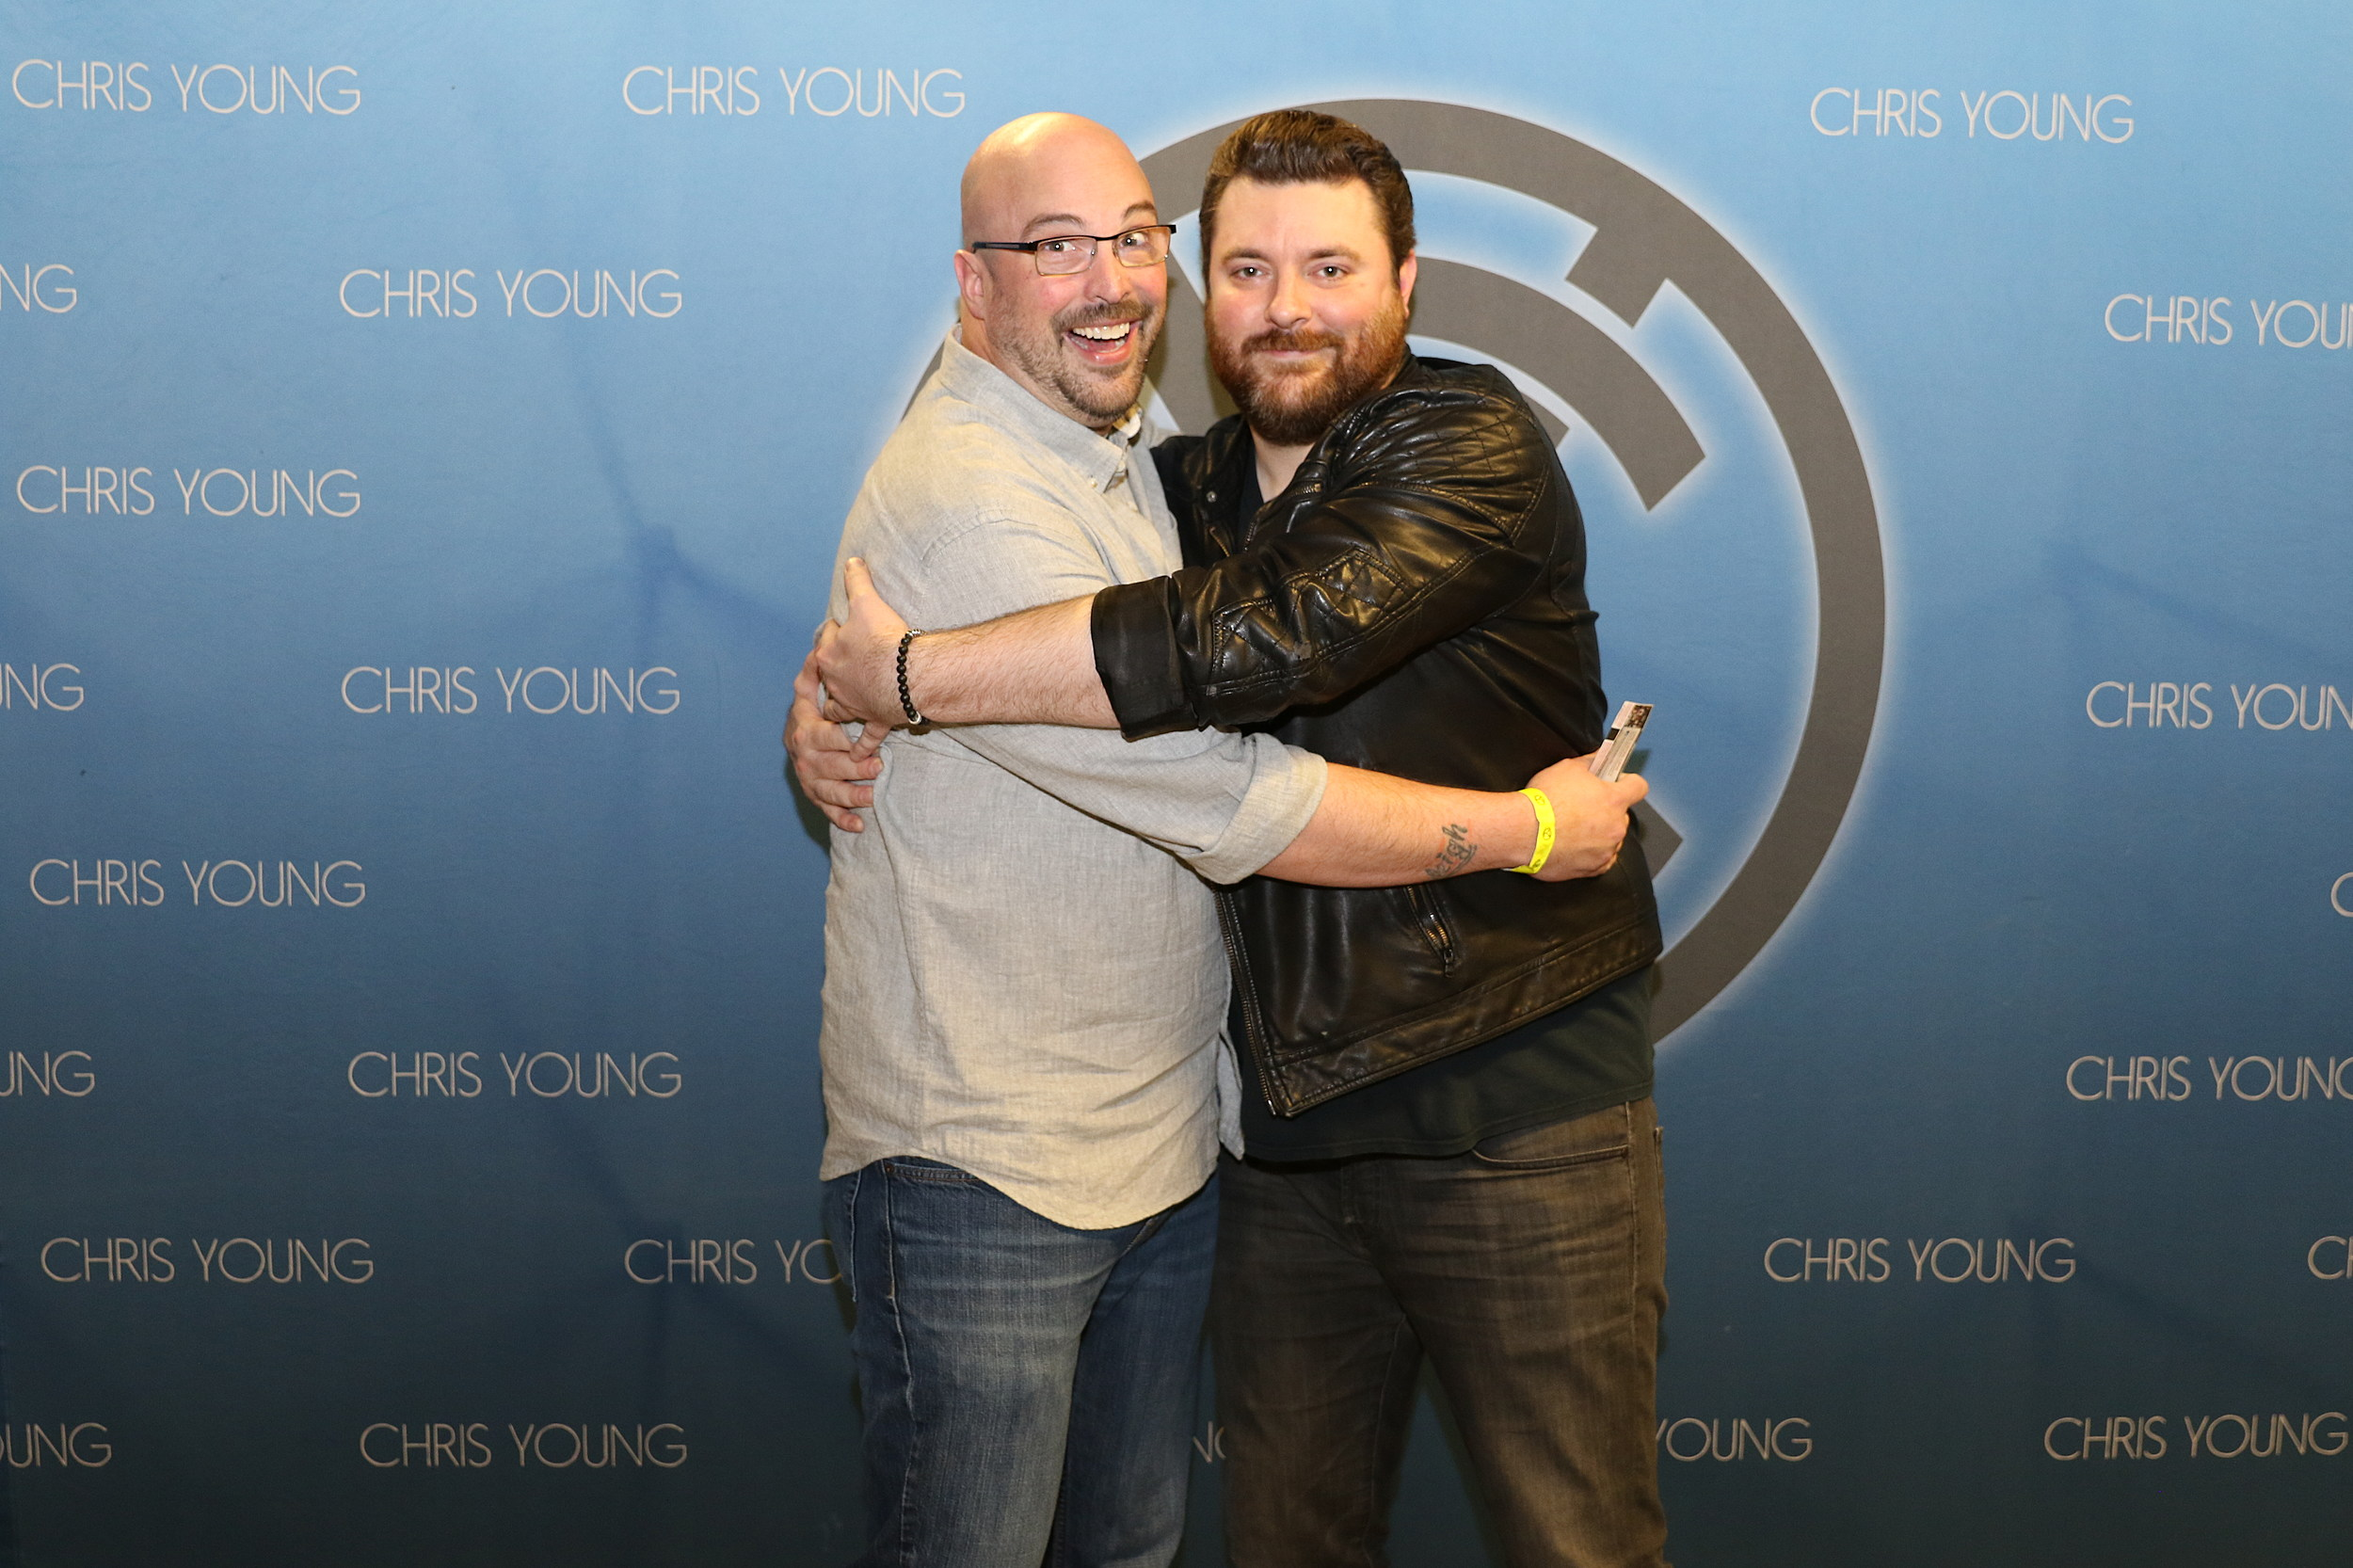 See Brains Hilarious Meet And Greet Encounter With Chris Young